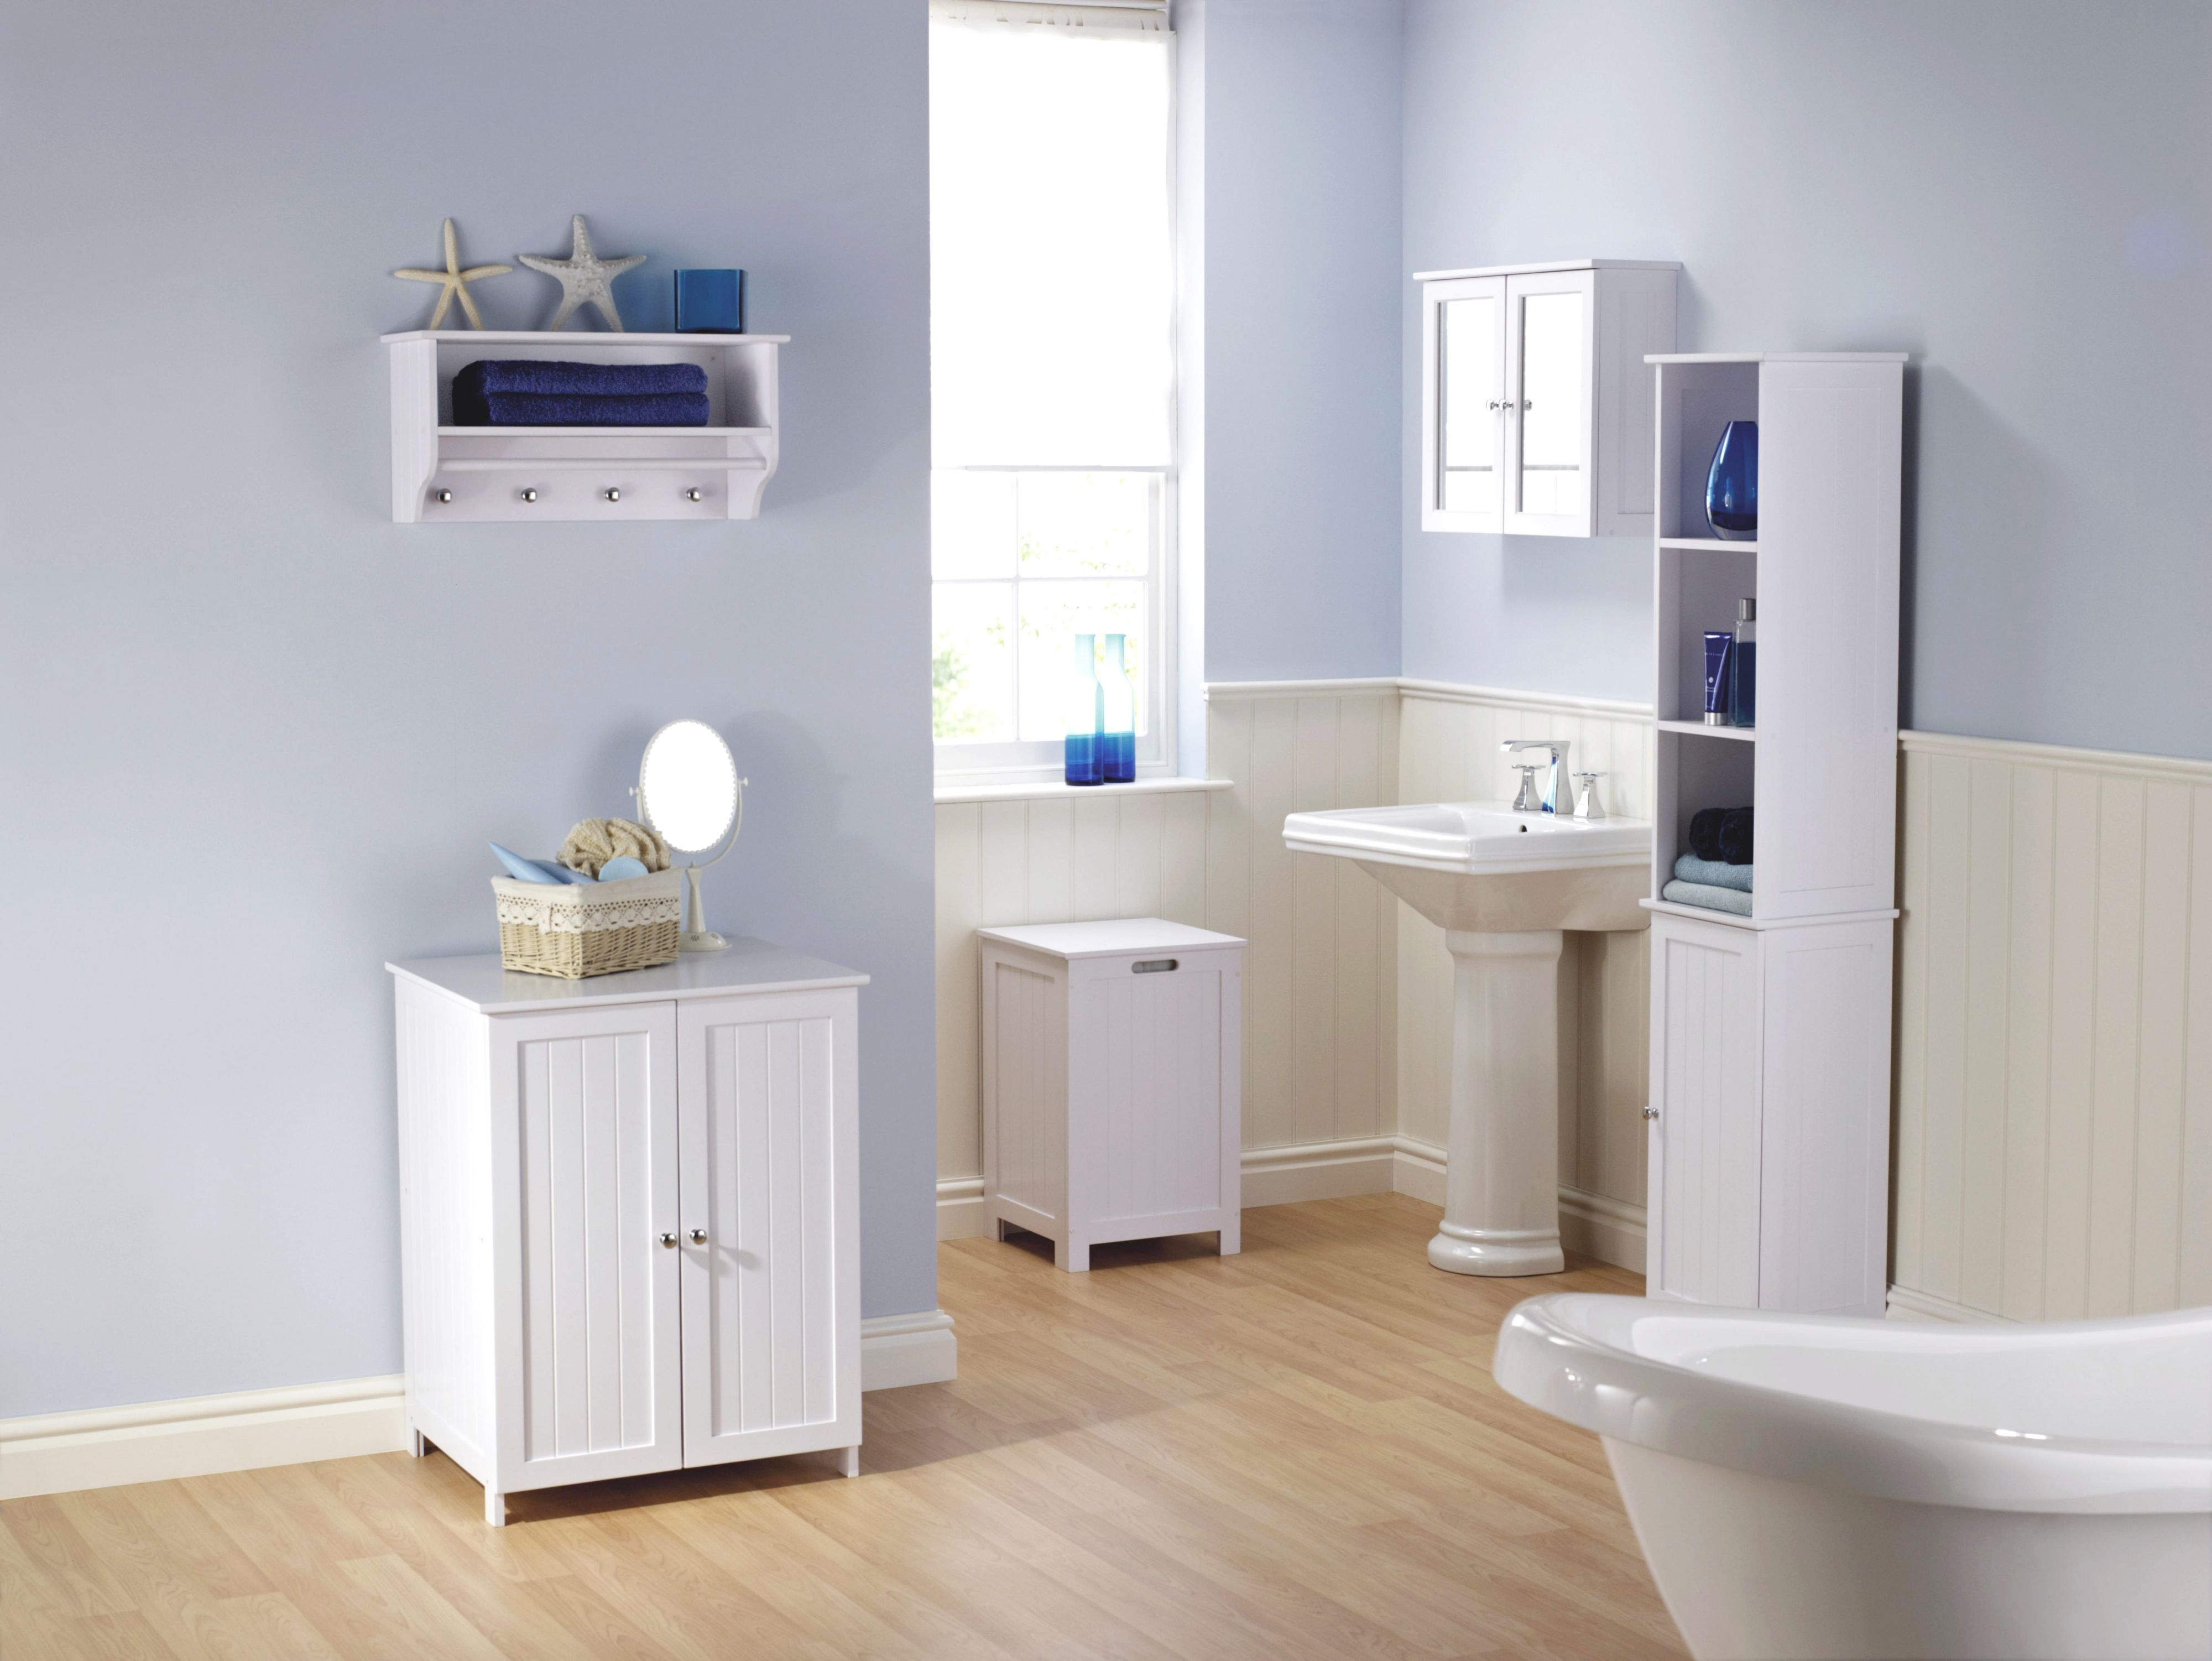 4 creative ideas for white bathroom storage unit